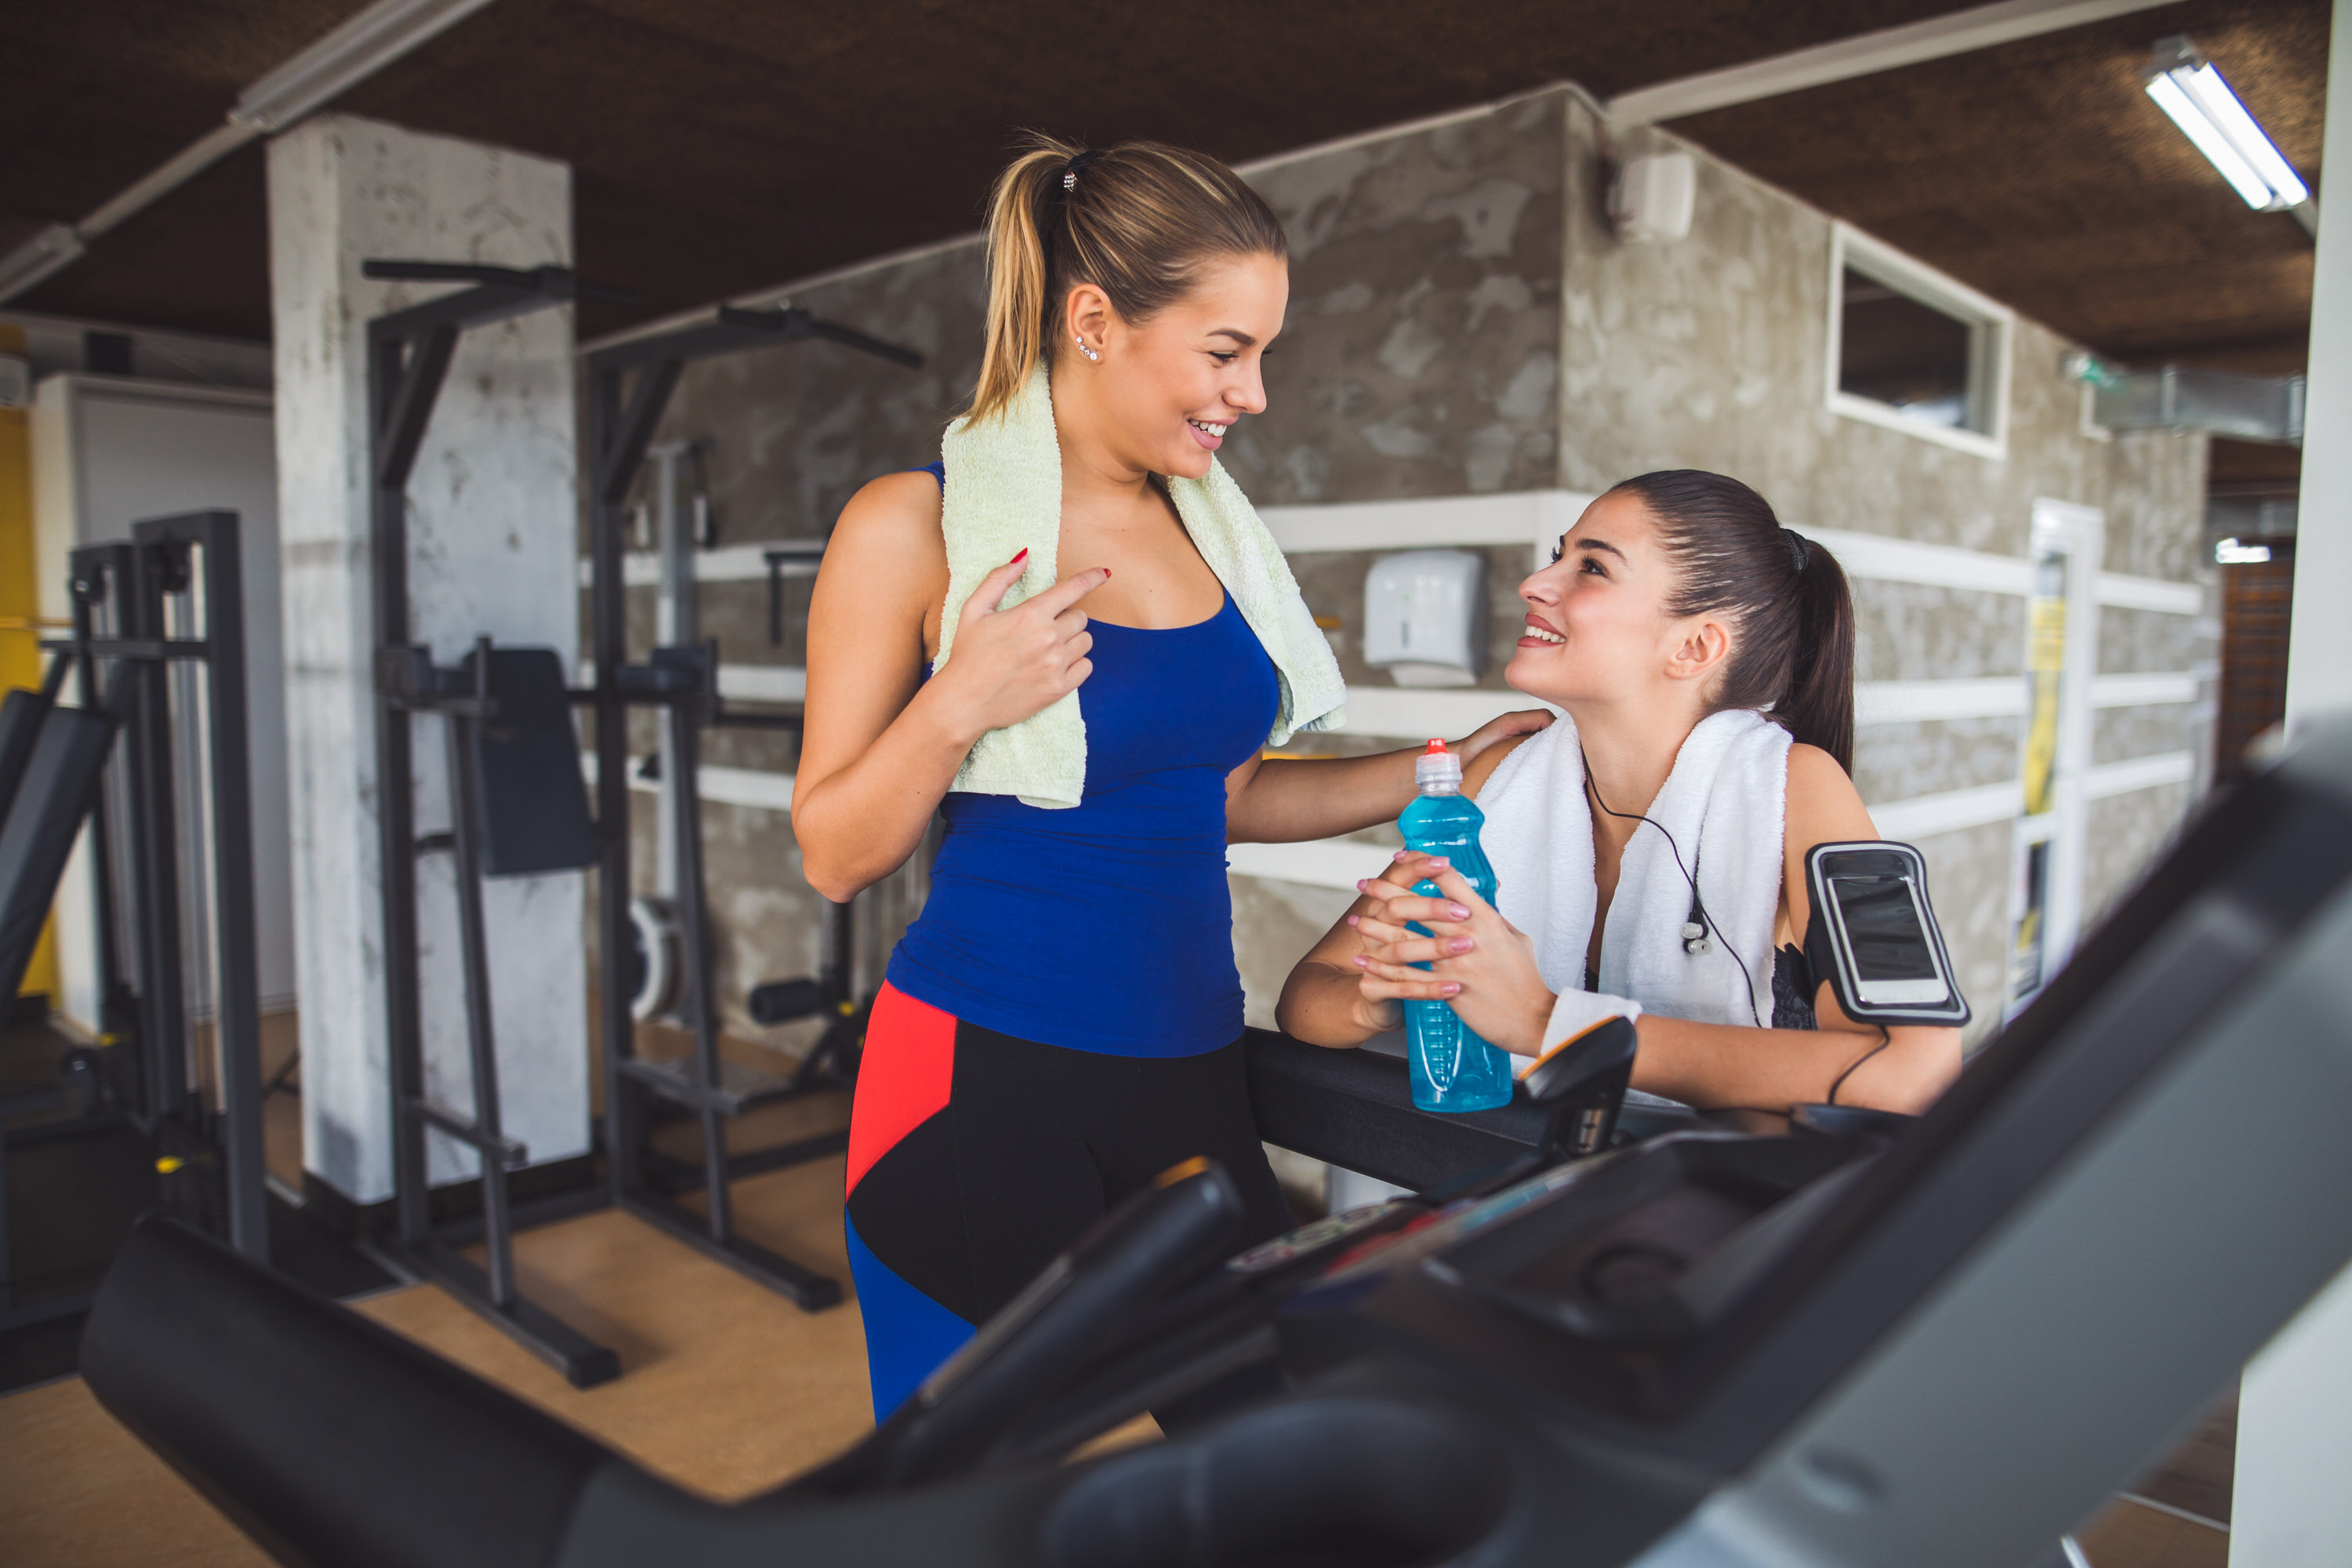 Two young women chatting at the gym while resting from workout